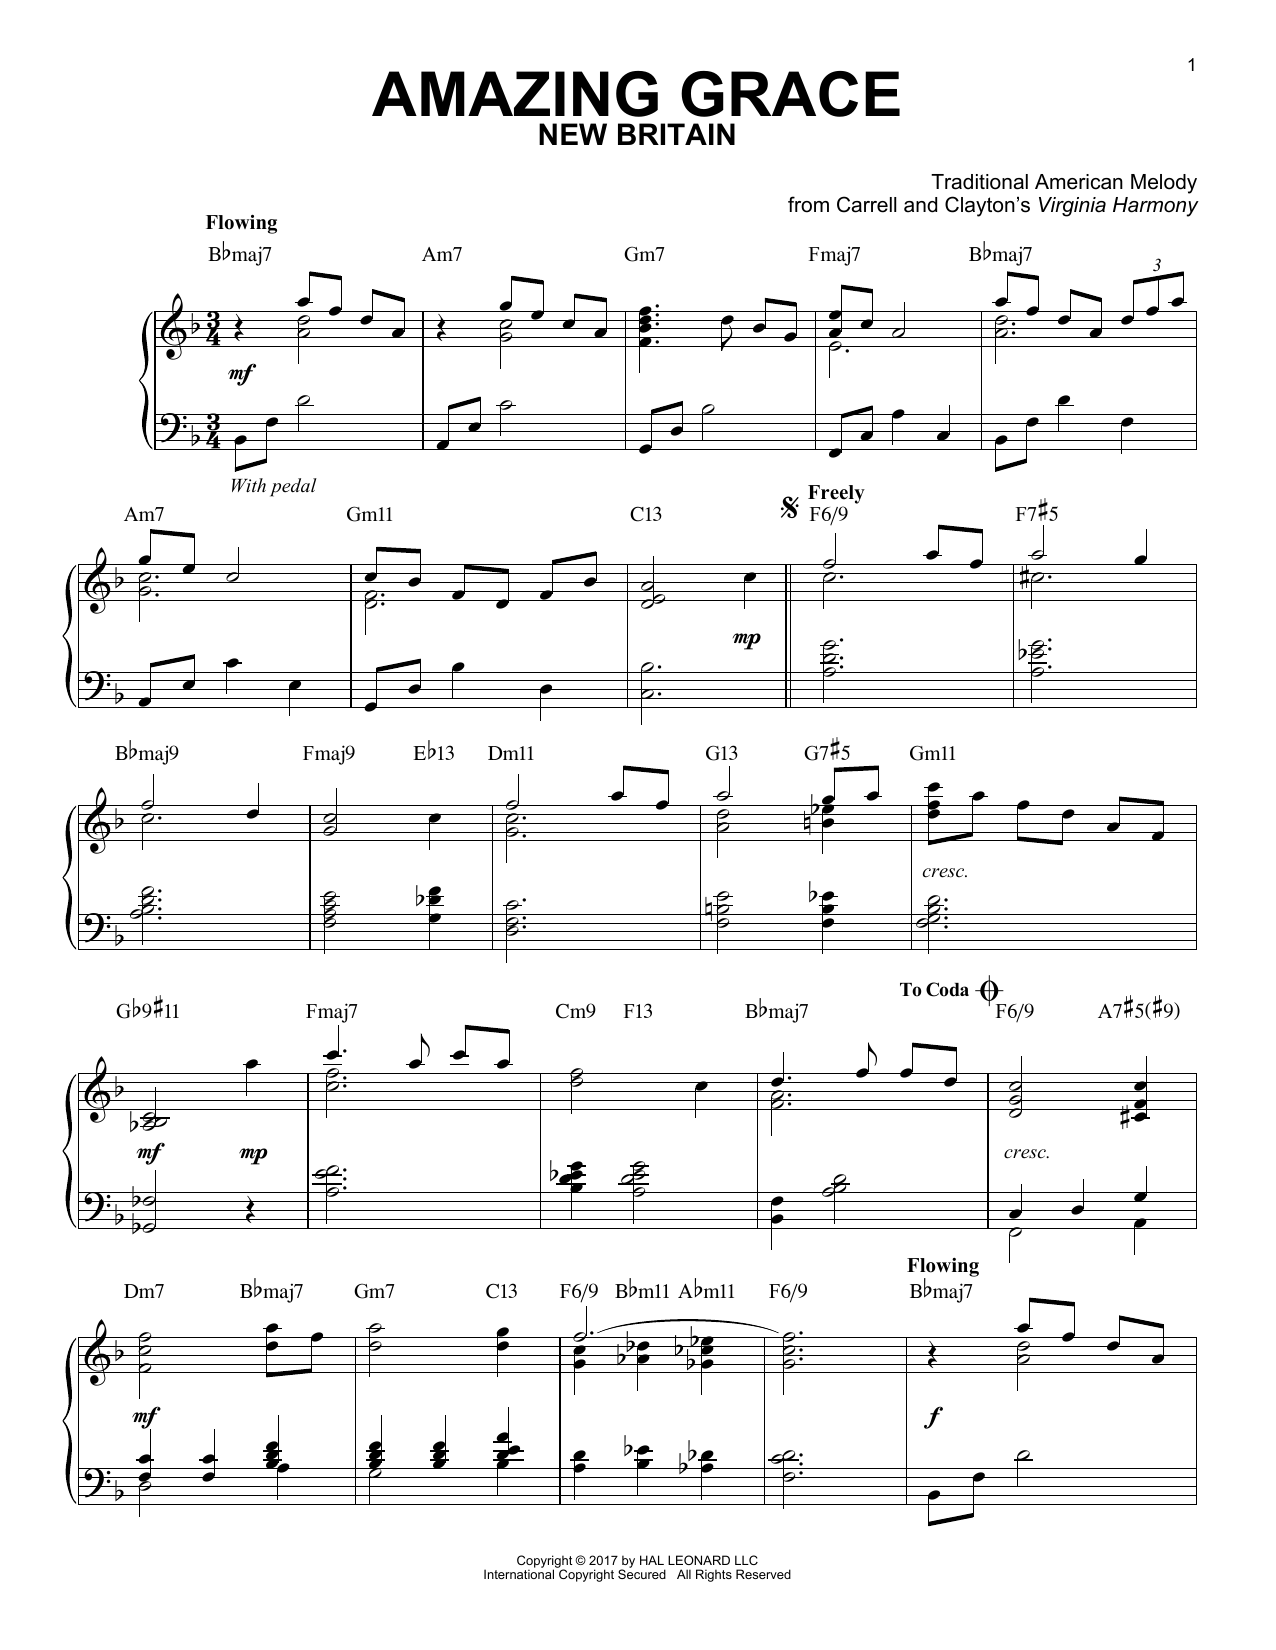 photograph regarding Free Printable Piano Sheet Music for Amazing Grace named Classic American Melody: Unbelievable Grace